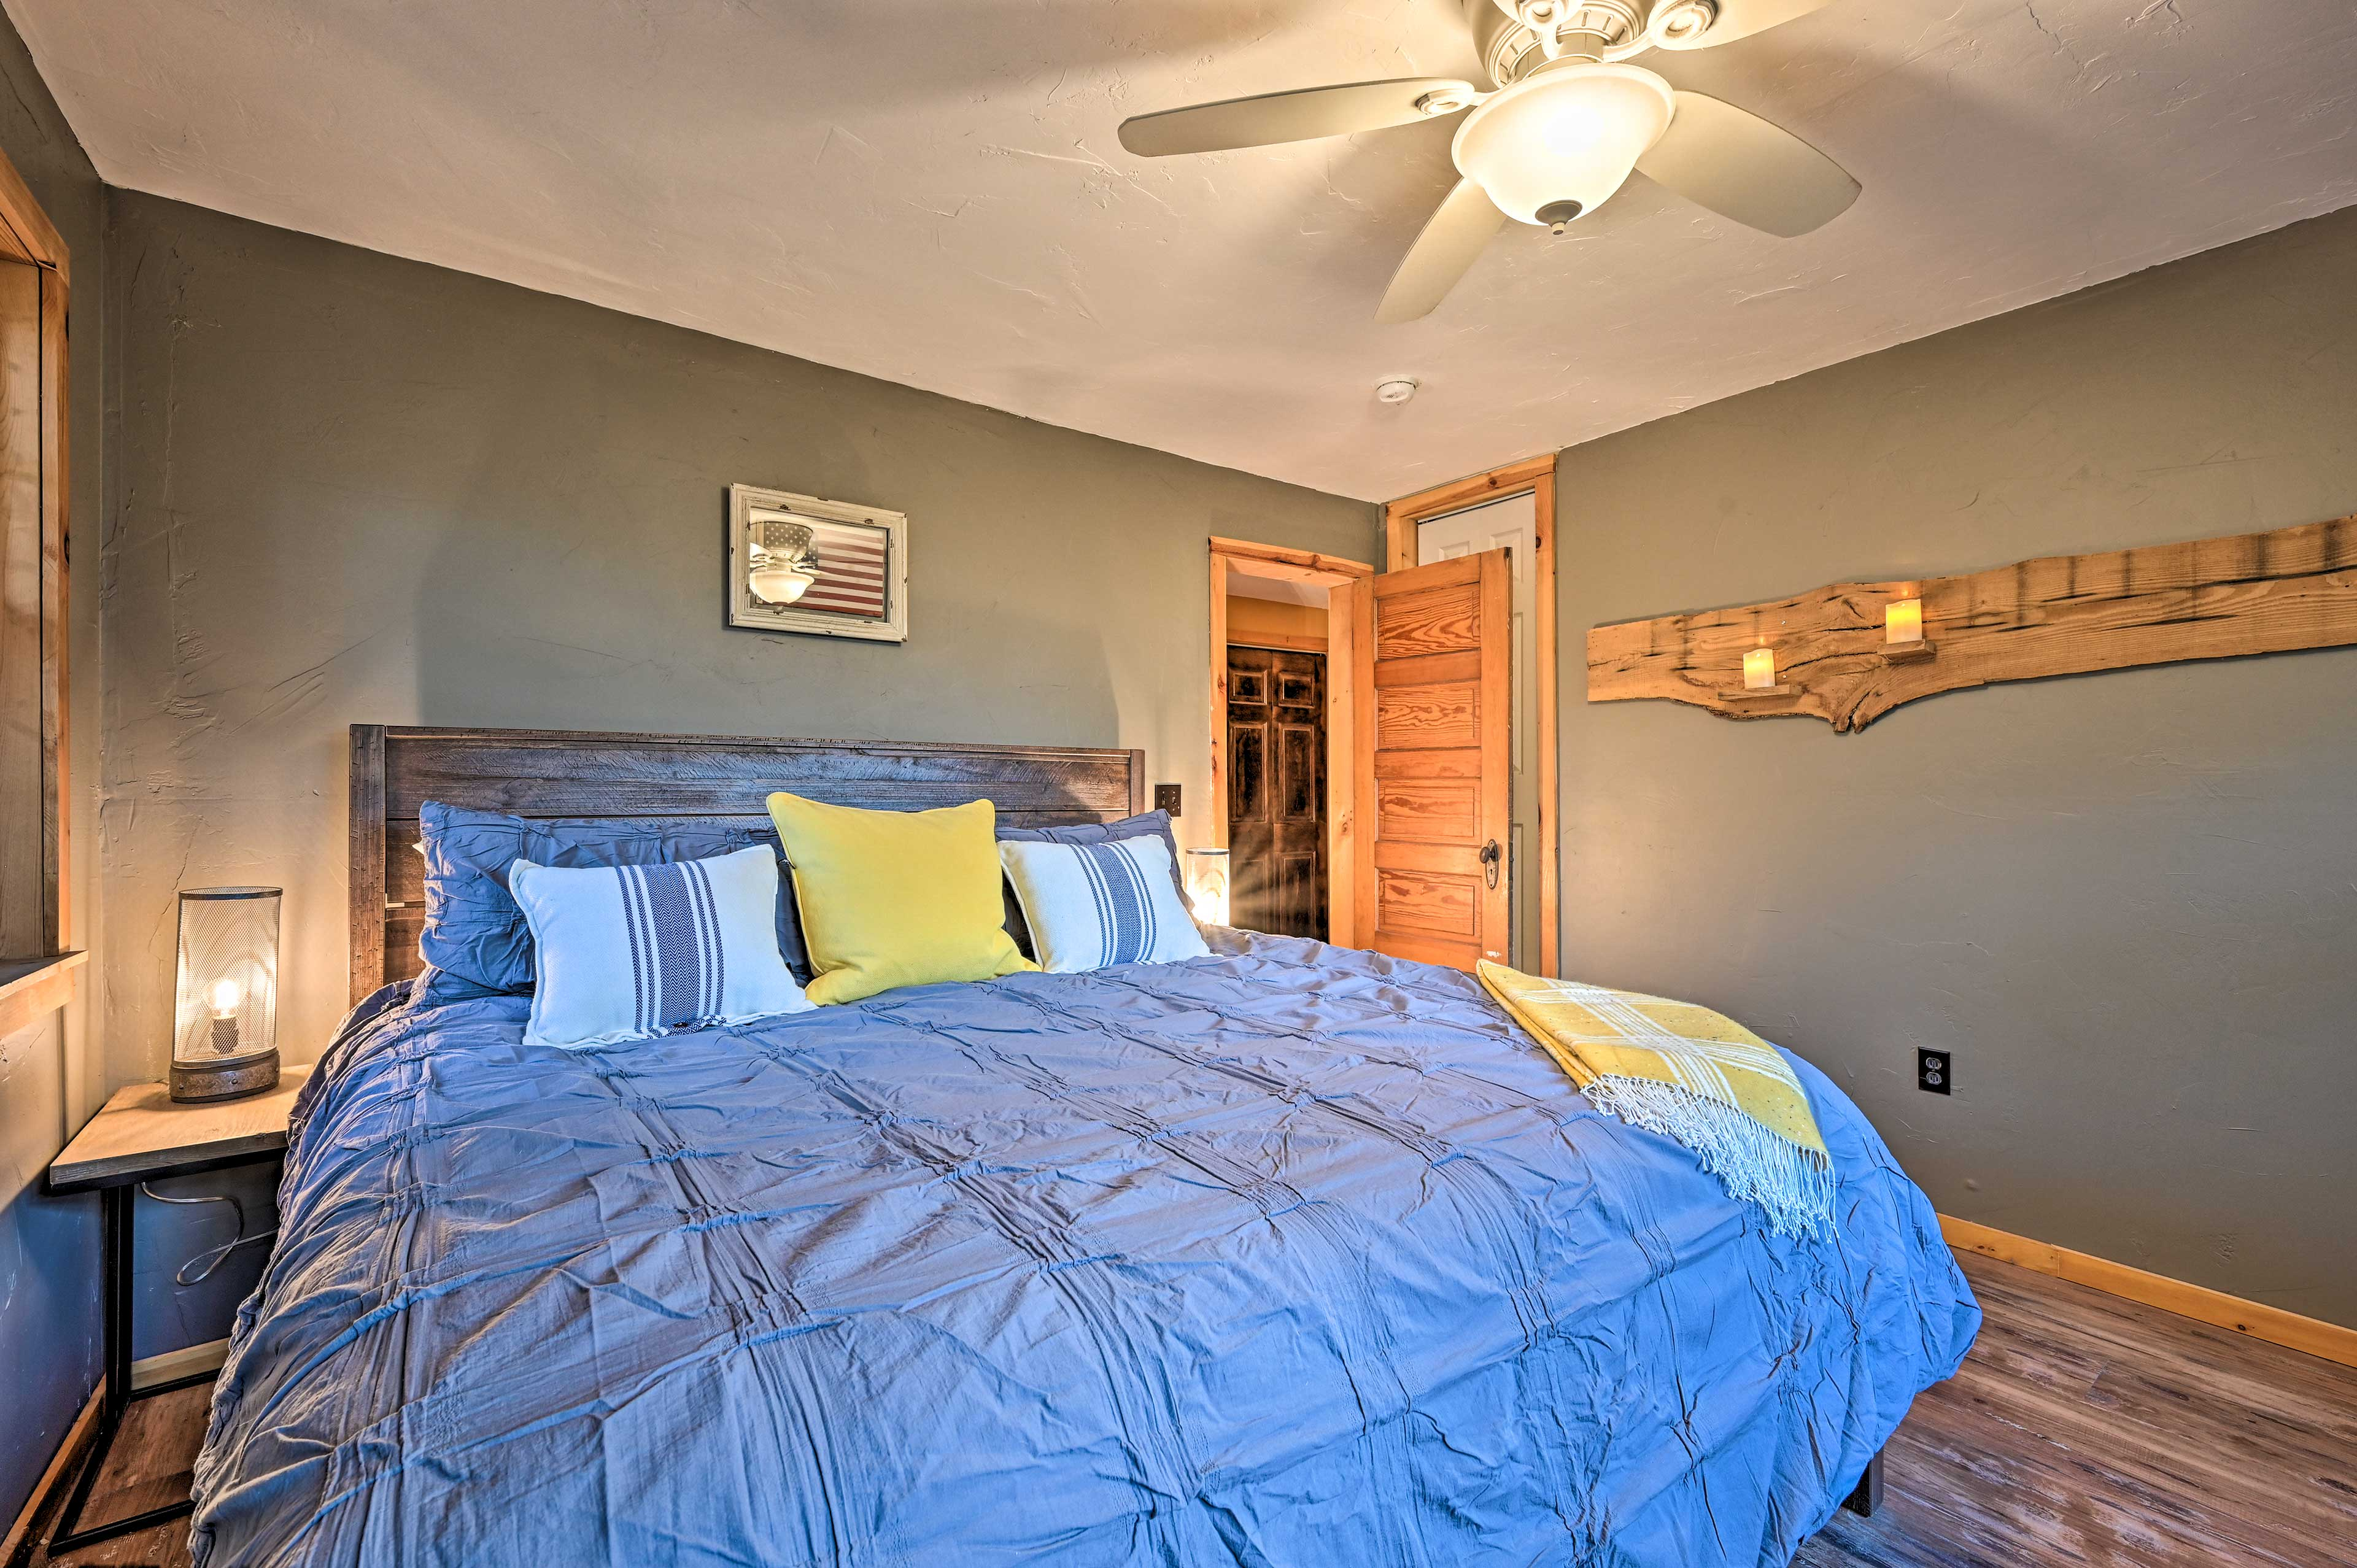 Sleep soundly in this well-outfitted king-sized bed.